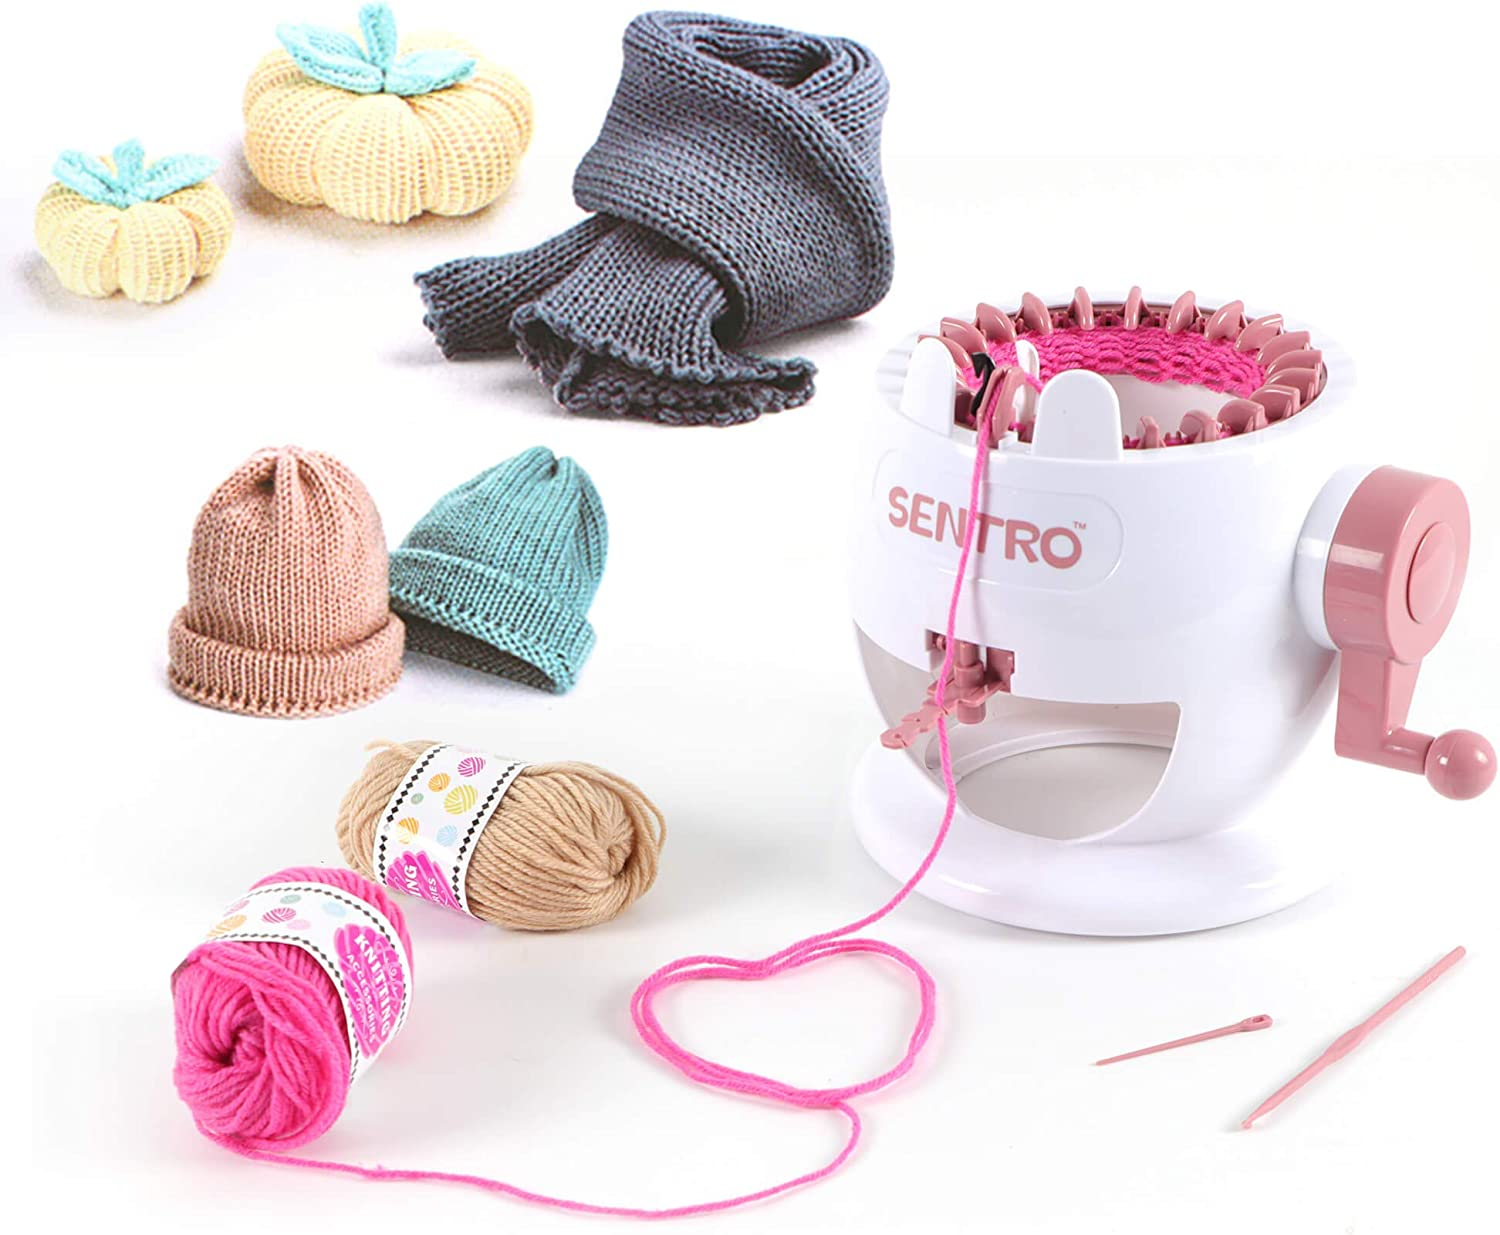 Knitting machine and examples of beginner knitting pieces.